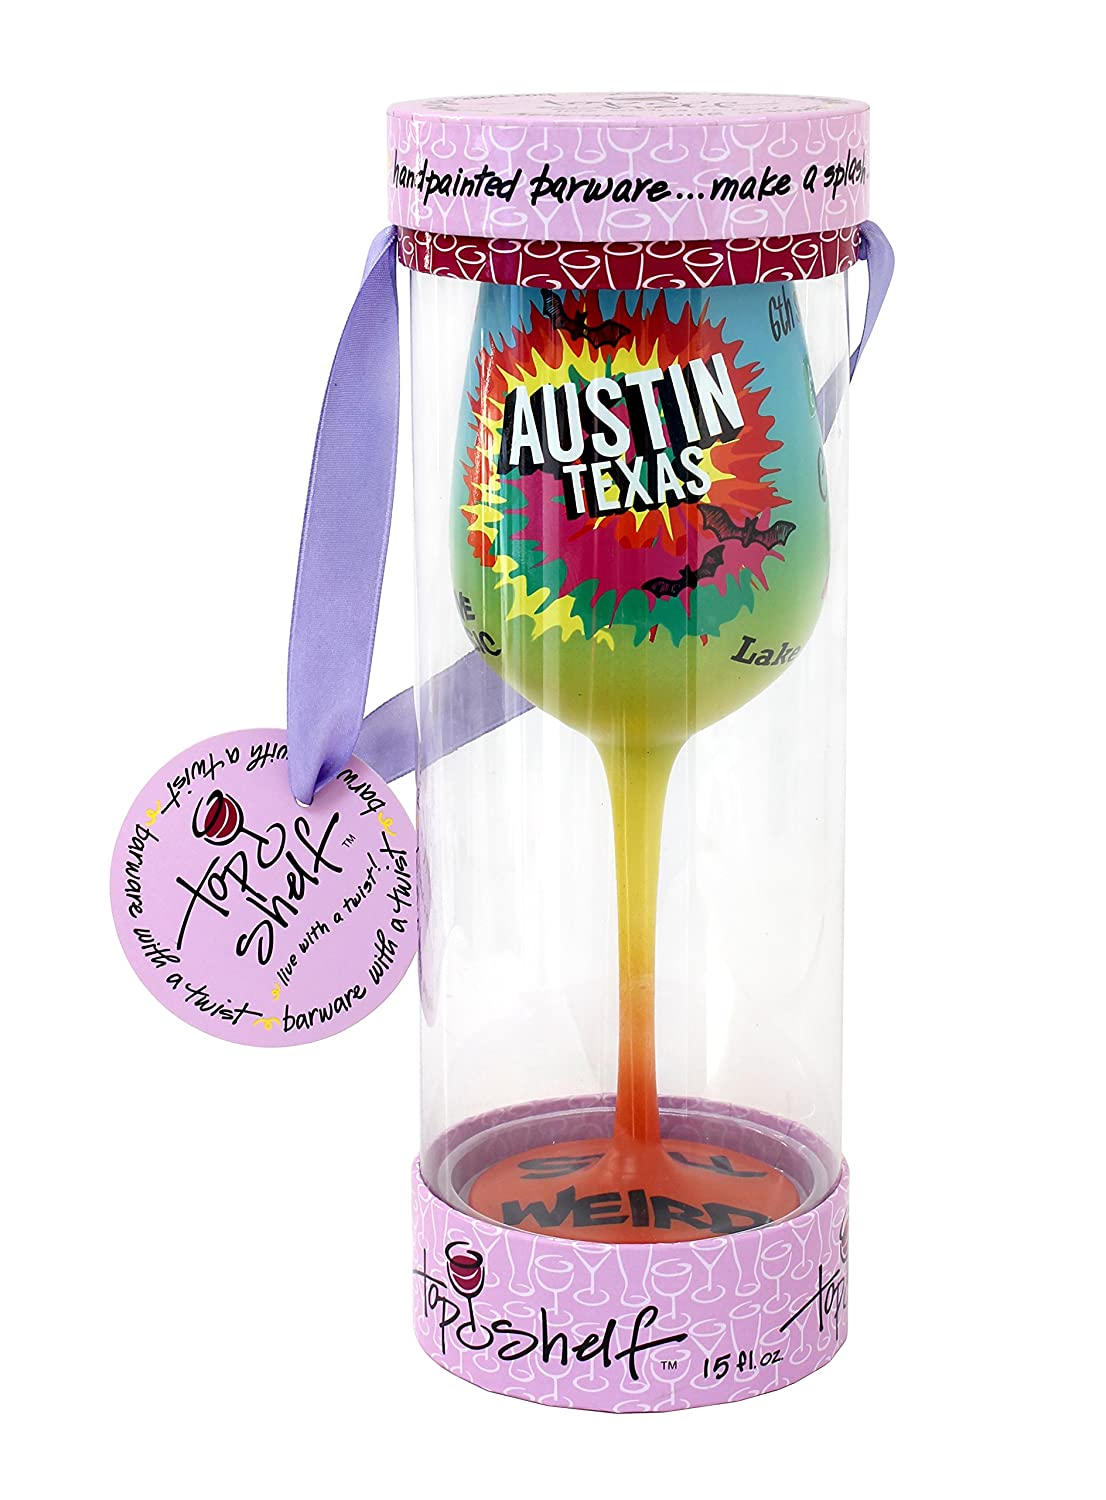 Top Shelf Multicolored Austin Texas Frosted Wine Glass ; Decorative Gift Ideas for Friends and Family ; Hand Painted ; For Red or White Wine